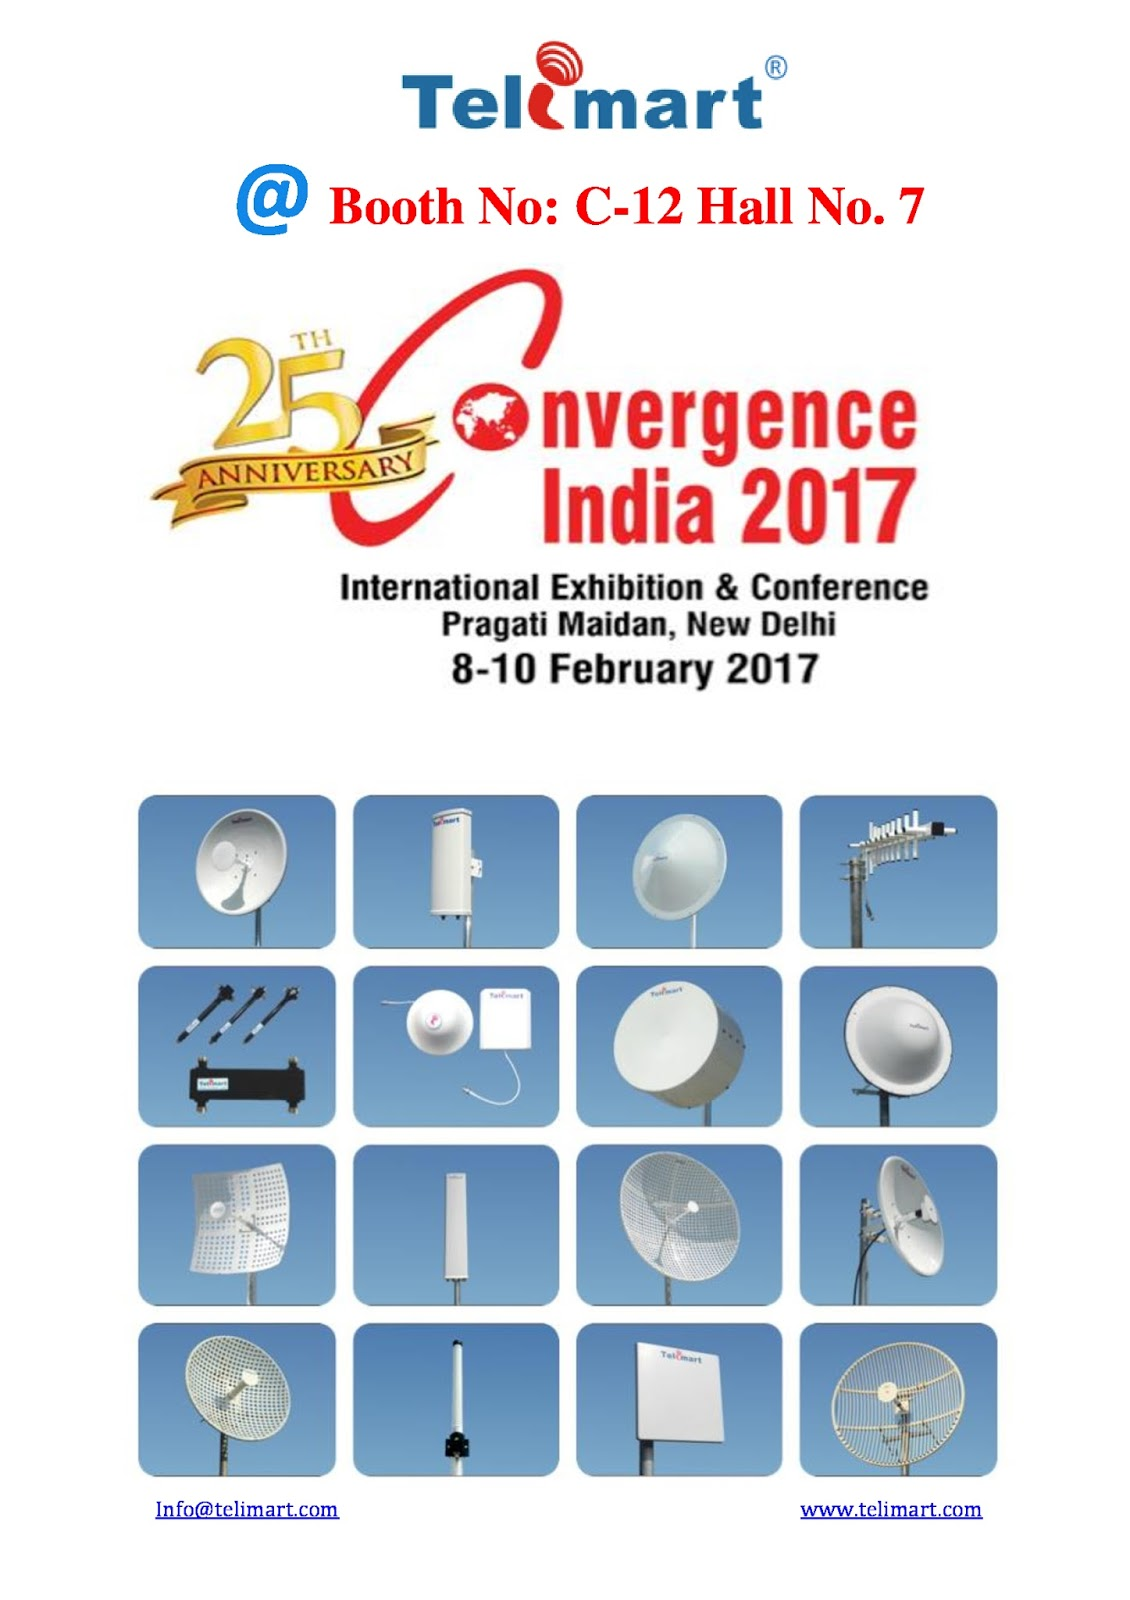 Telimart india pvt ltd please visit telimart india pvt ltd at please visit telimart india pvt ltd at 25th convergence india 2017 exhibition booth no c 12 hall no7 pragati maidan new delhi stopboris Choice Image